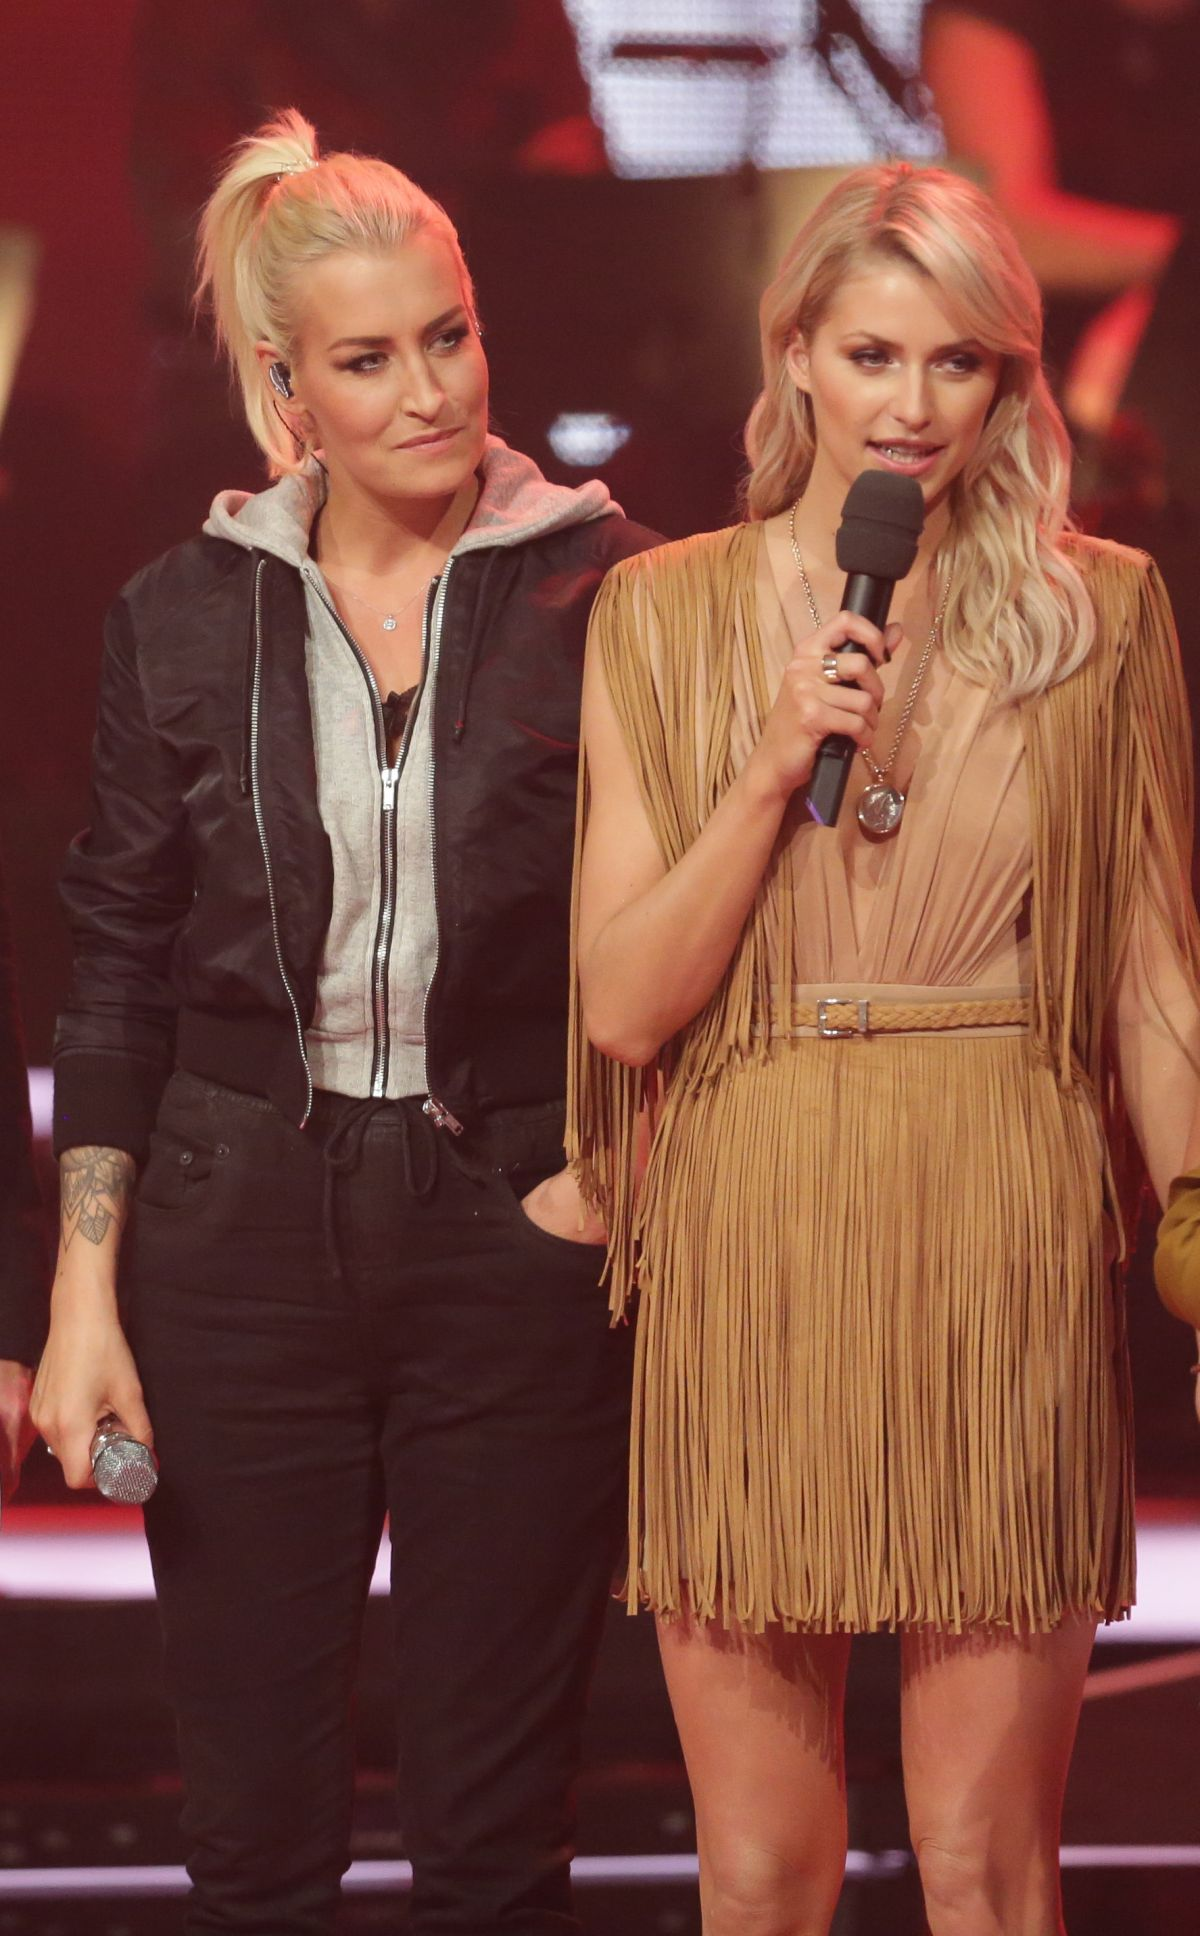 LENA GERCKE and SARAH CONNOR at The Voice of Germany, First Live-show Finals in Berlin